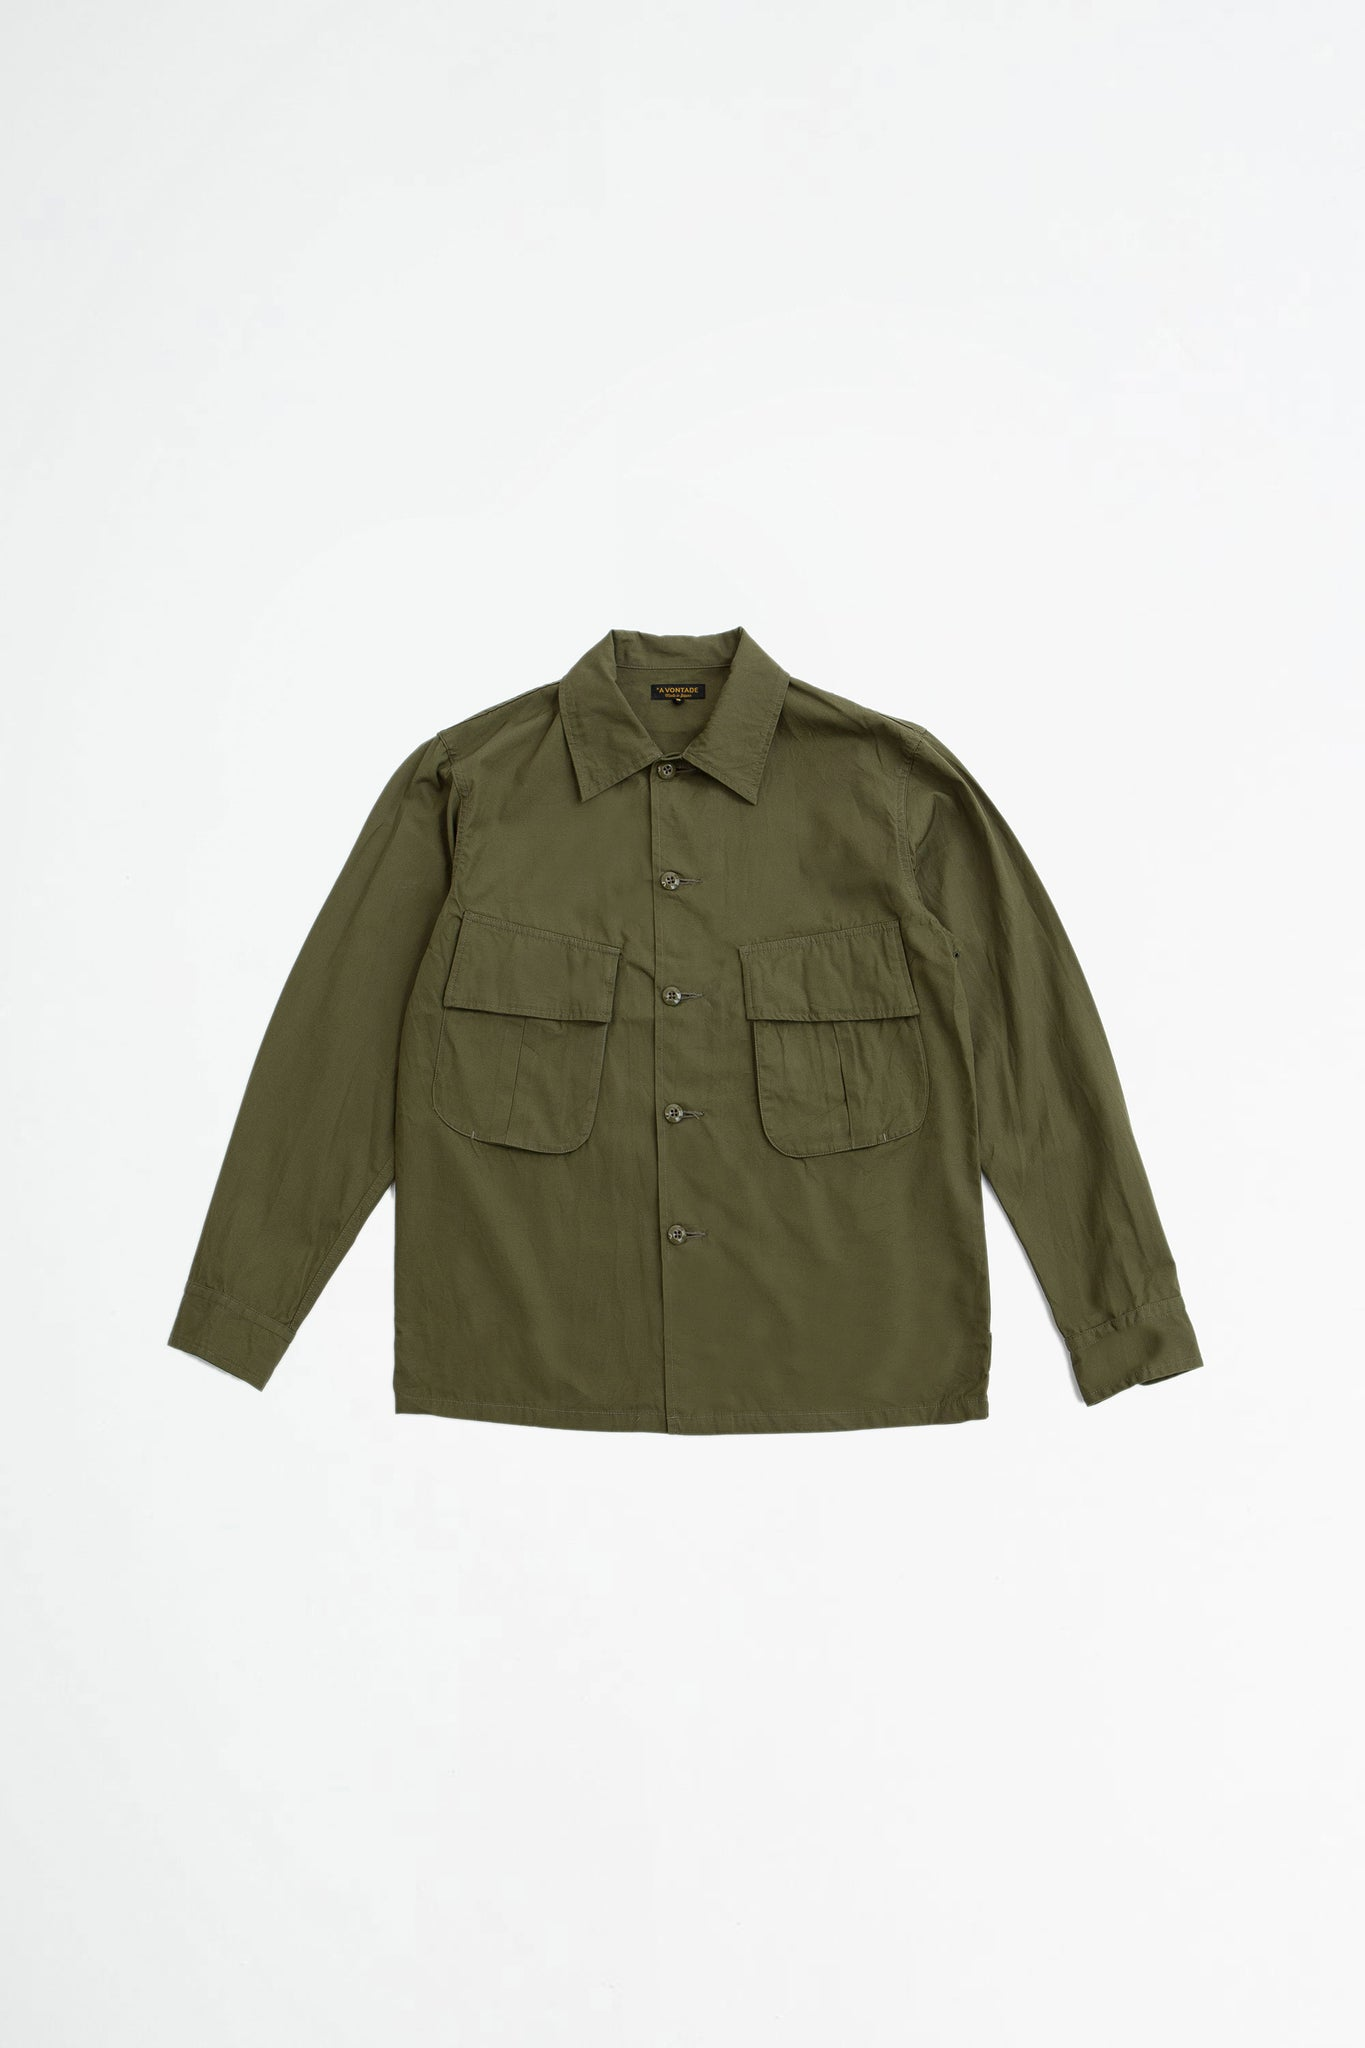 Fatigue shirt jacket olive